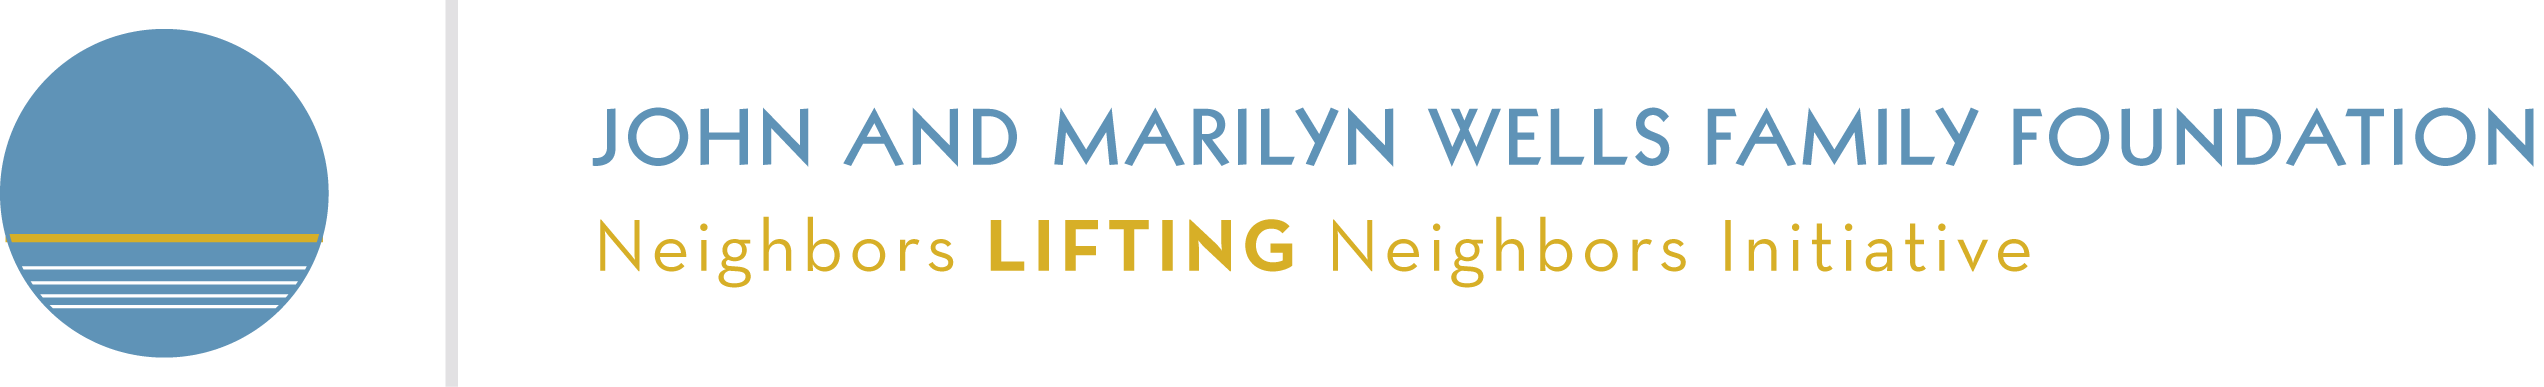 John and Marilyn Wells Family logo